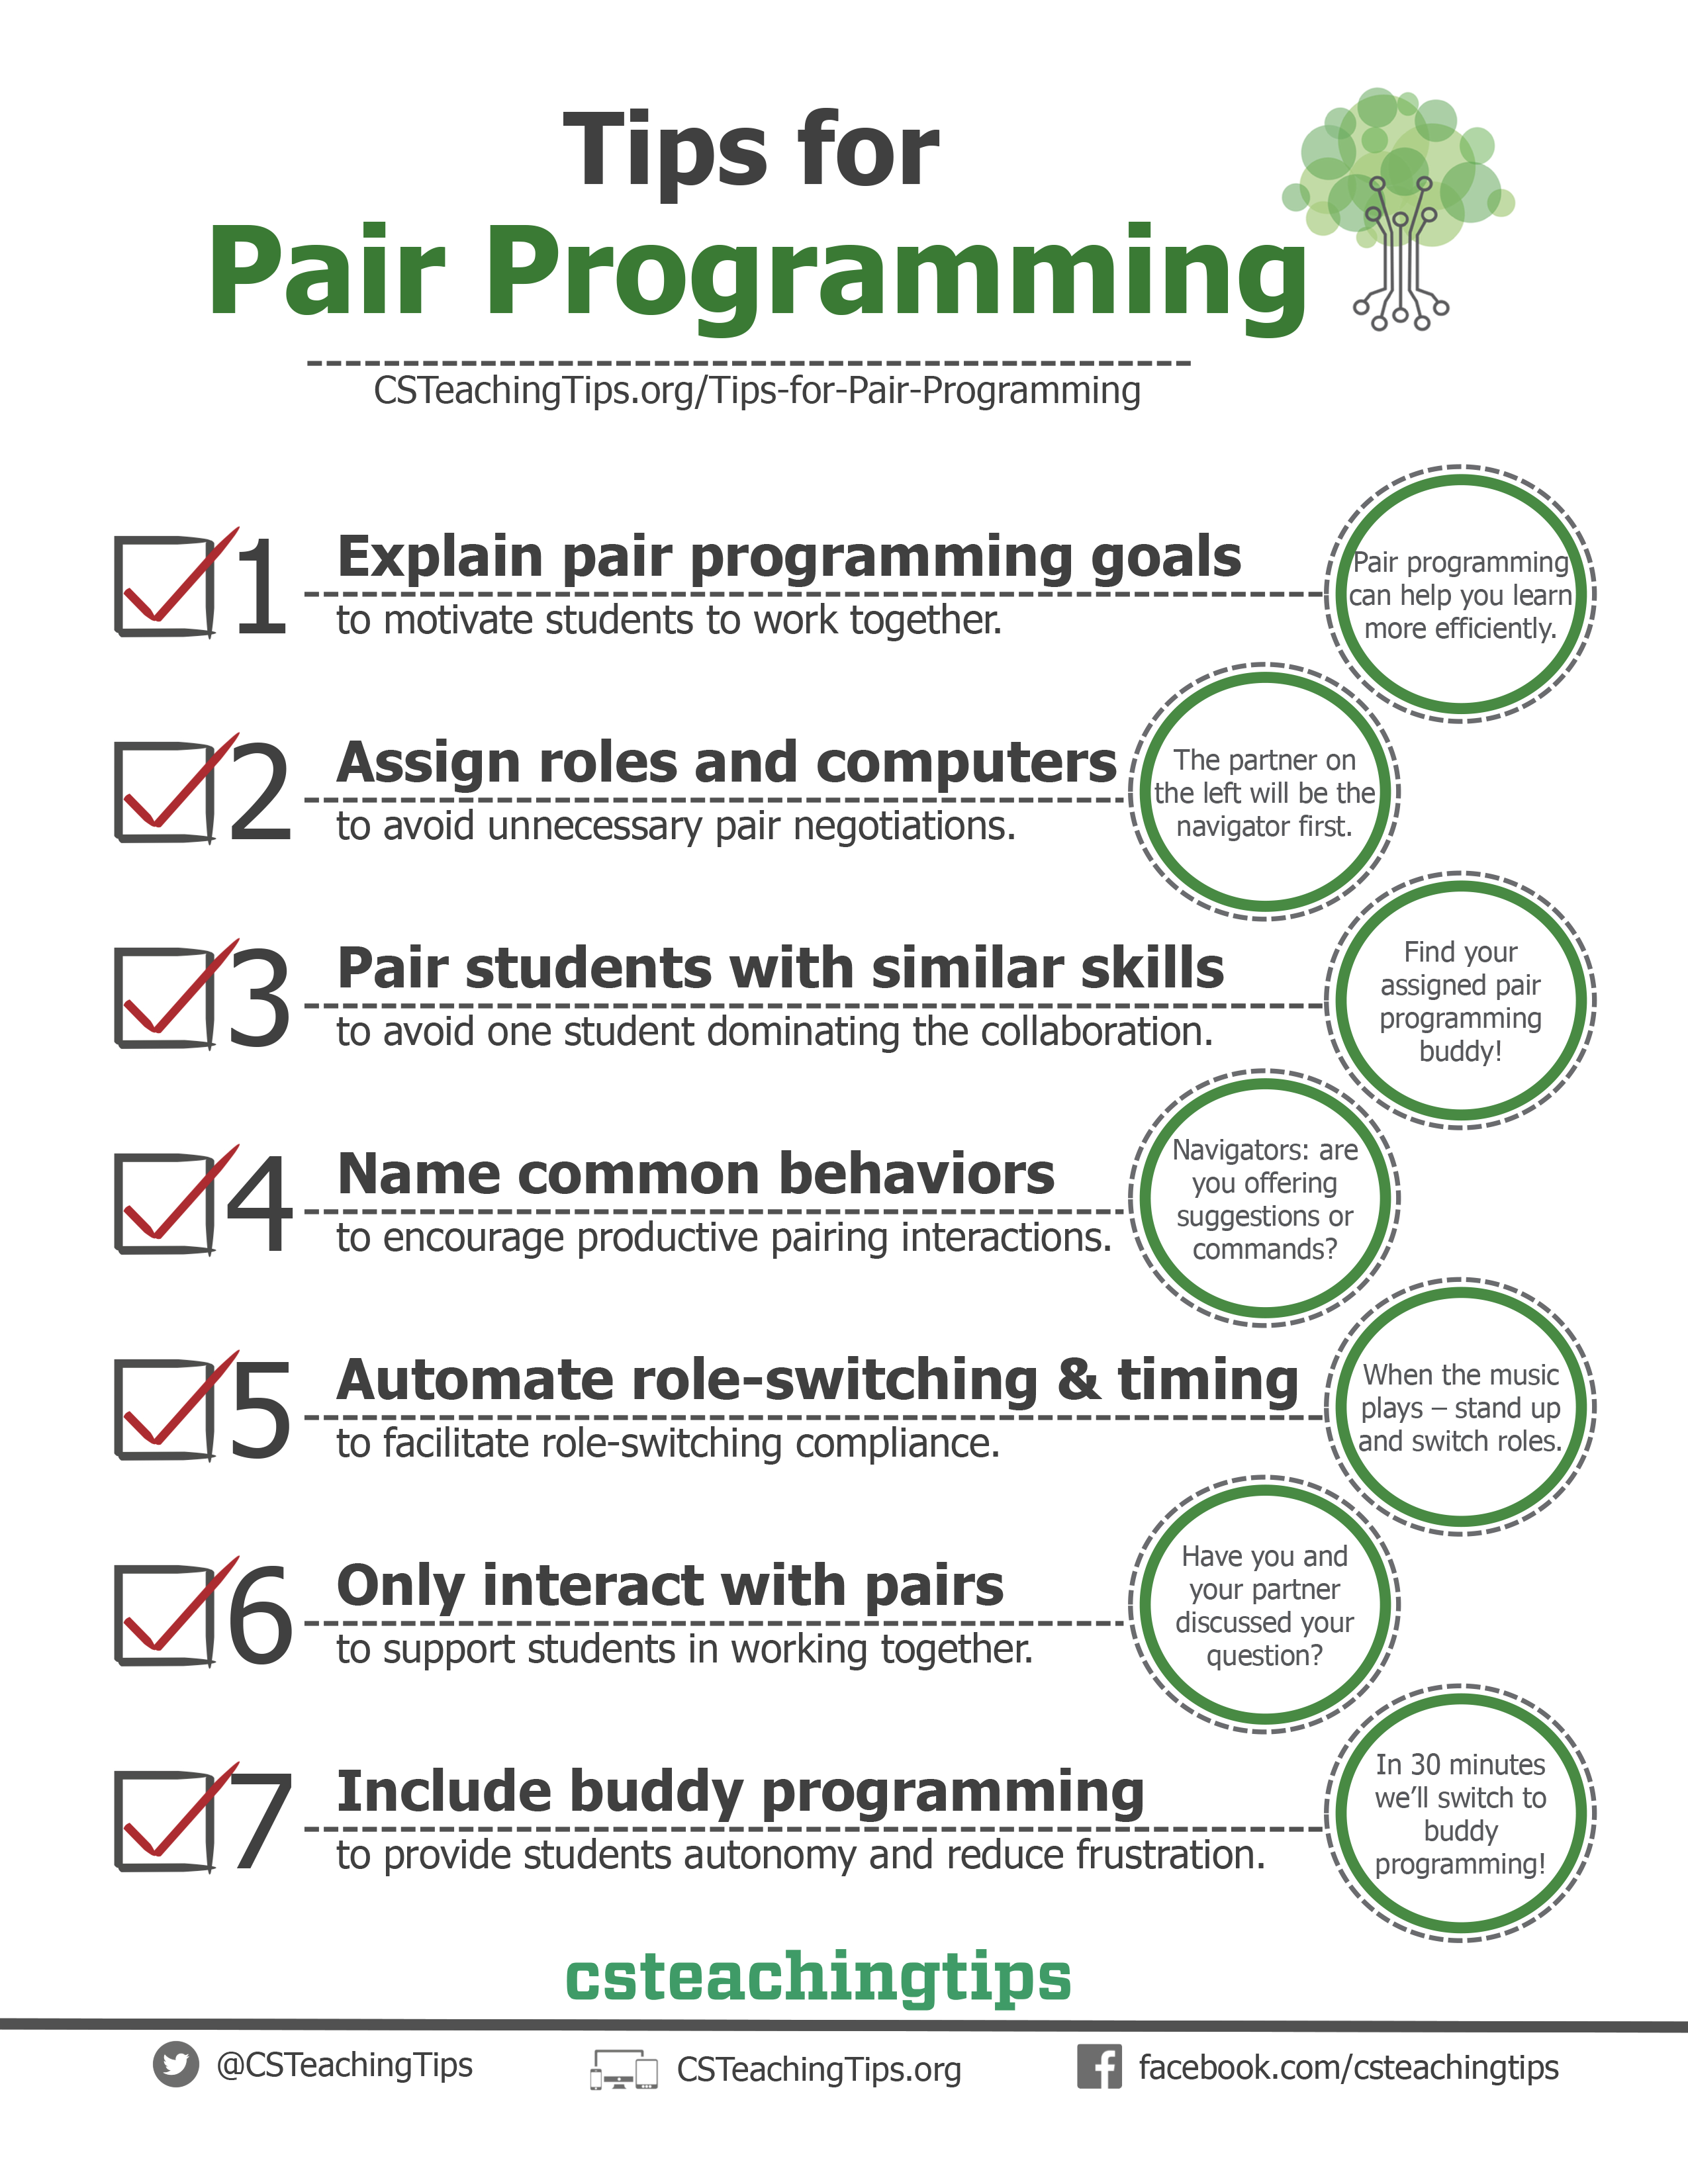 Tips for Pair Programming